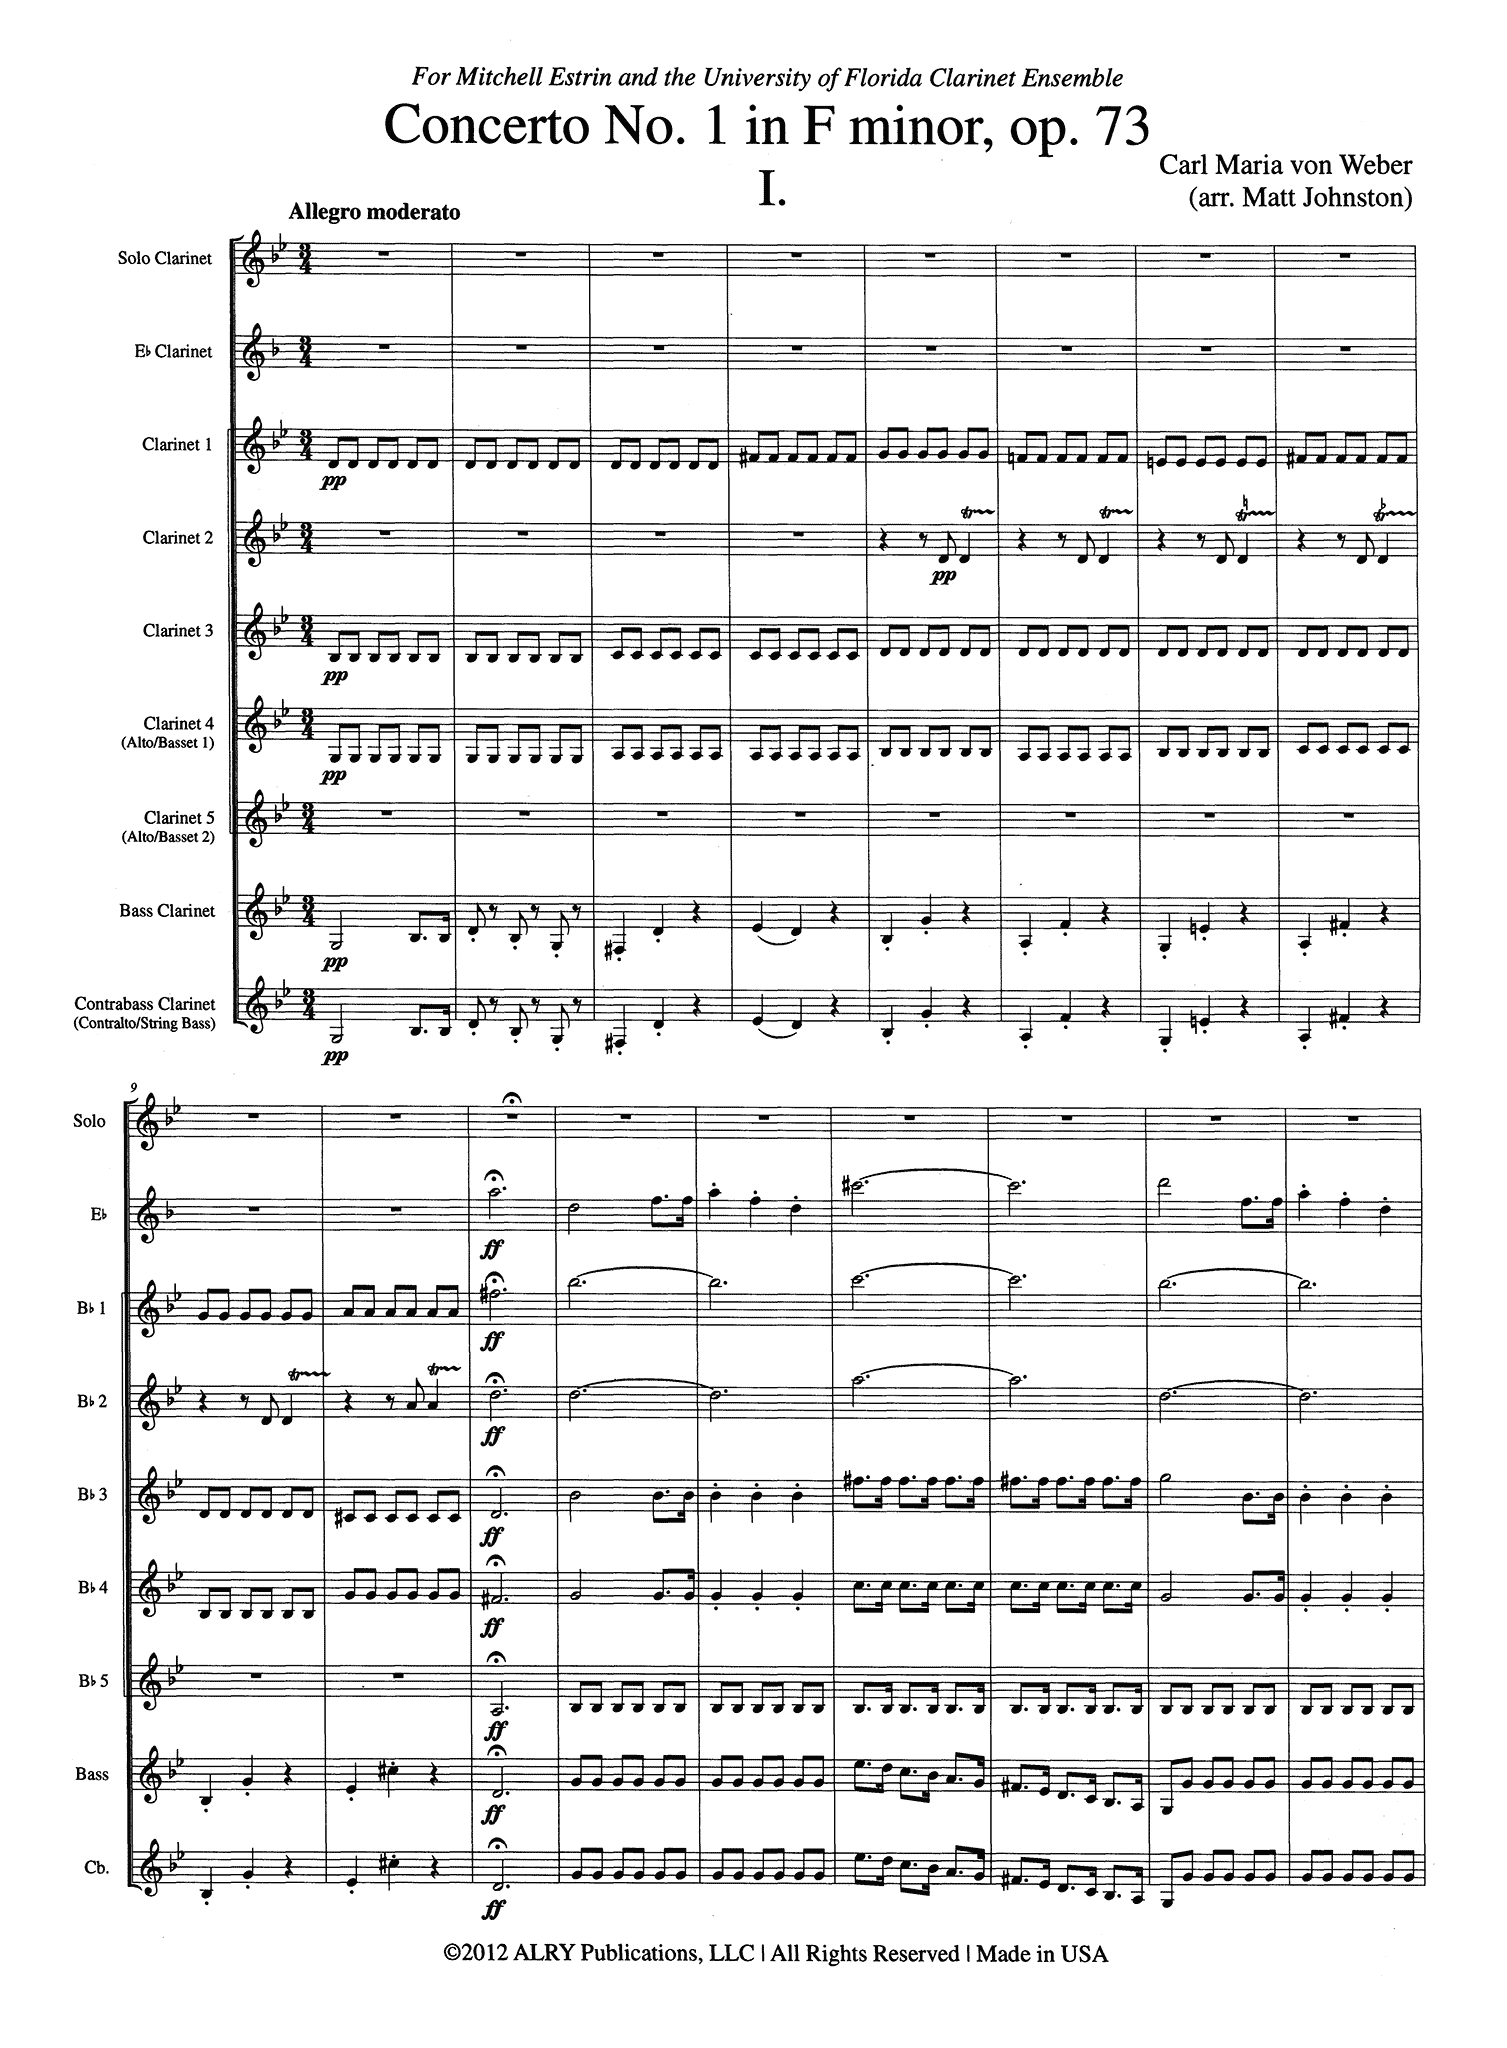 Weber Clarinet Concerto No. 1 for Clarinet Choir - Movement 1